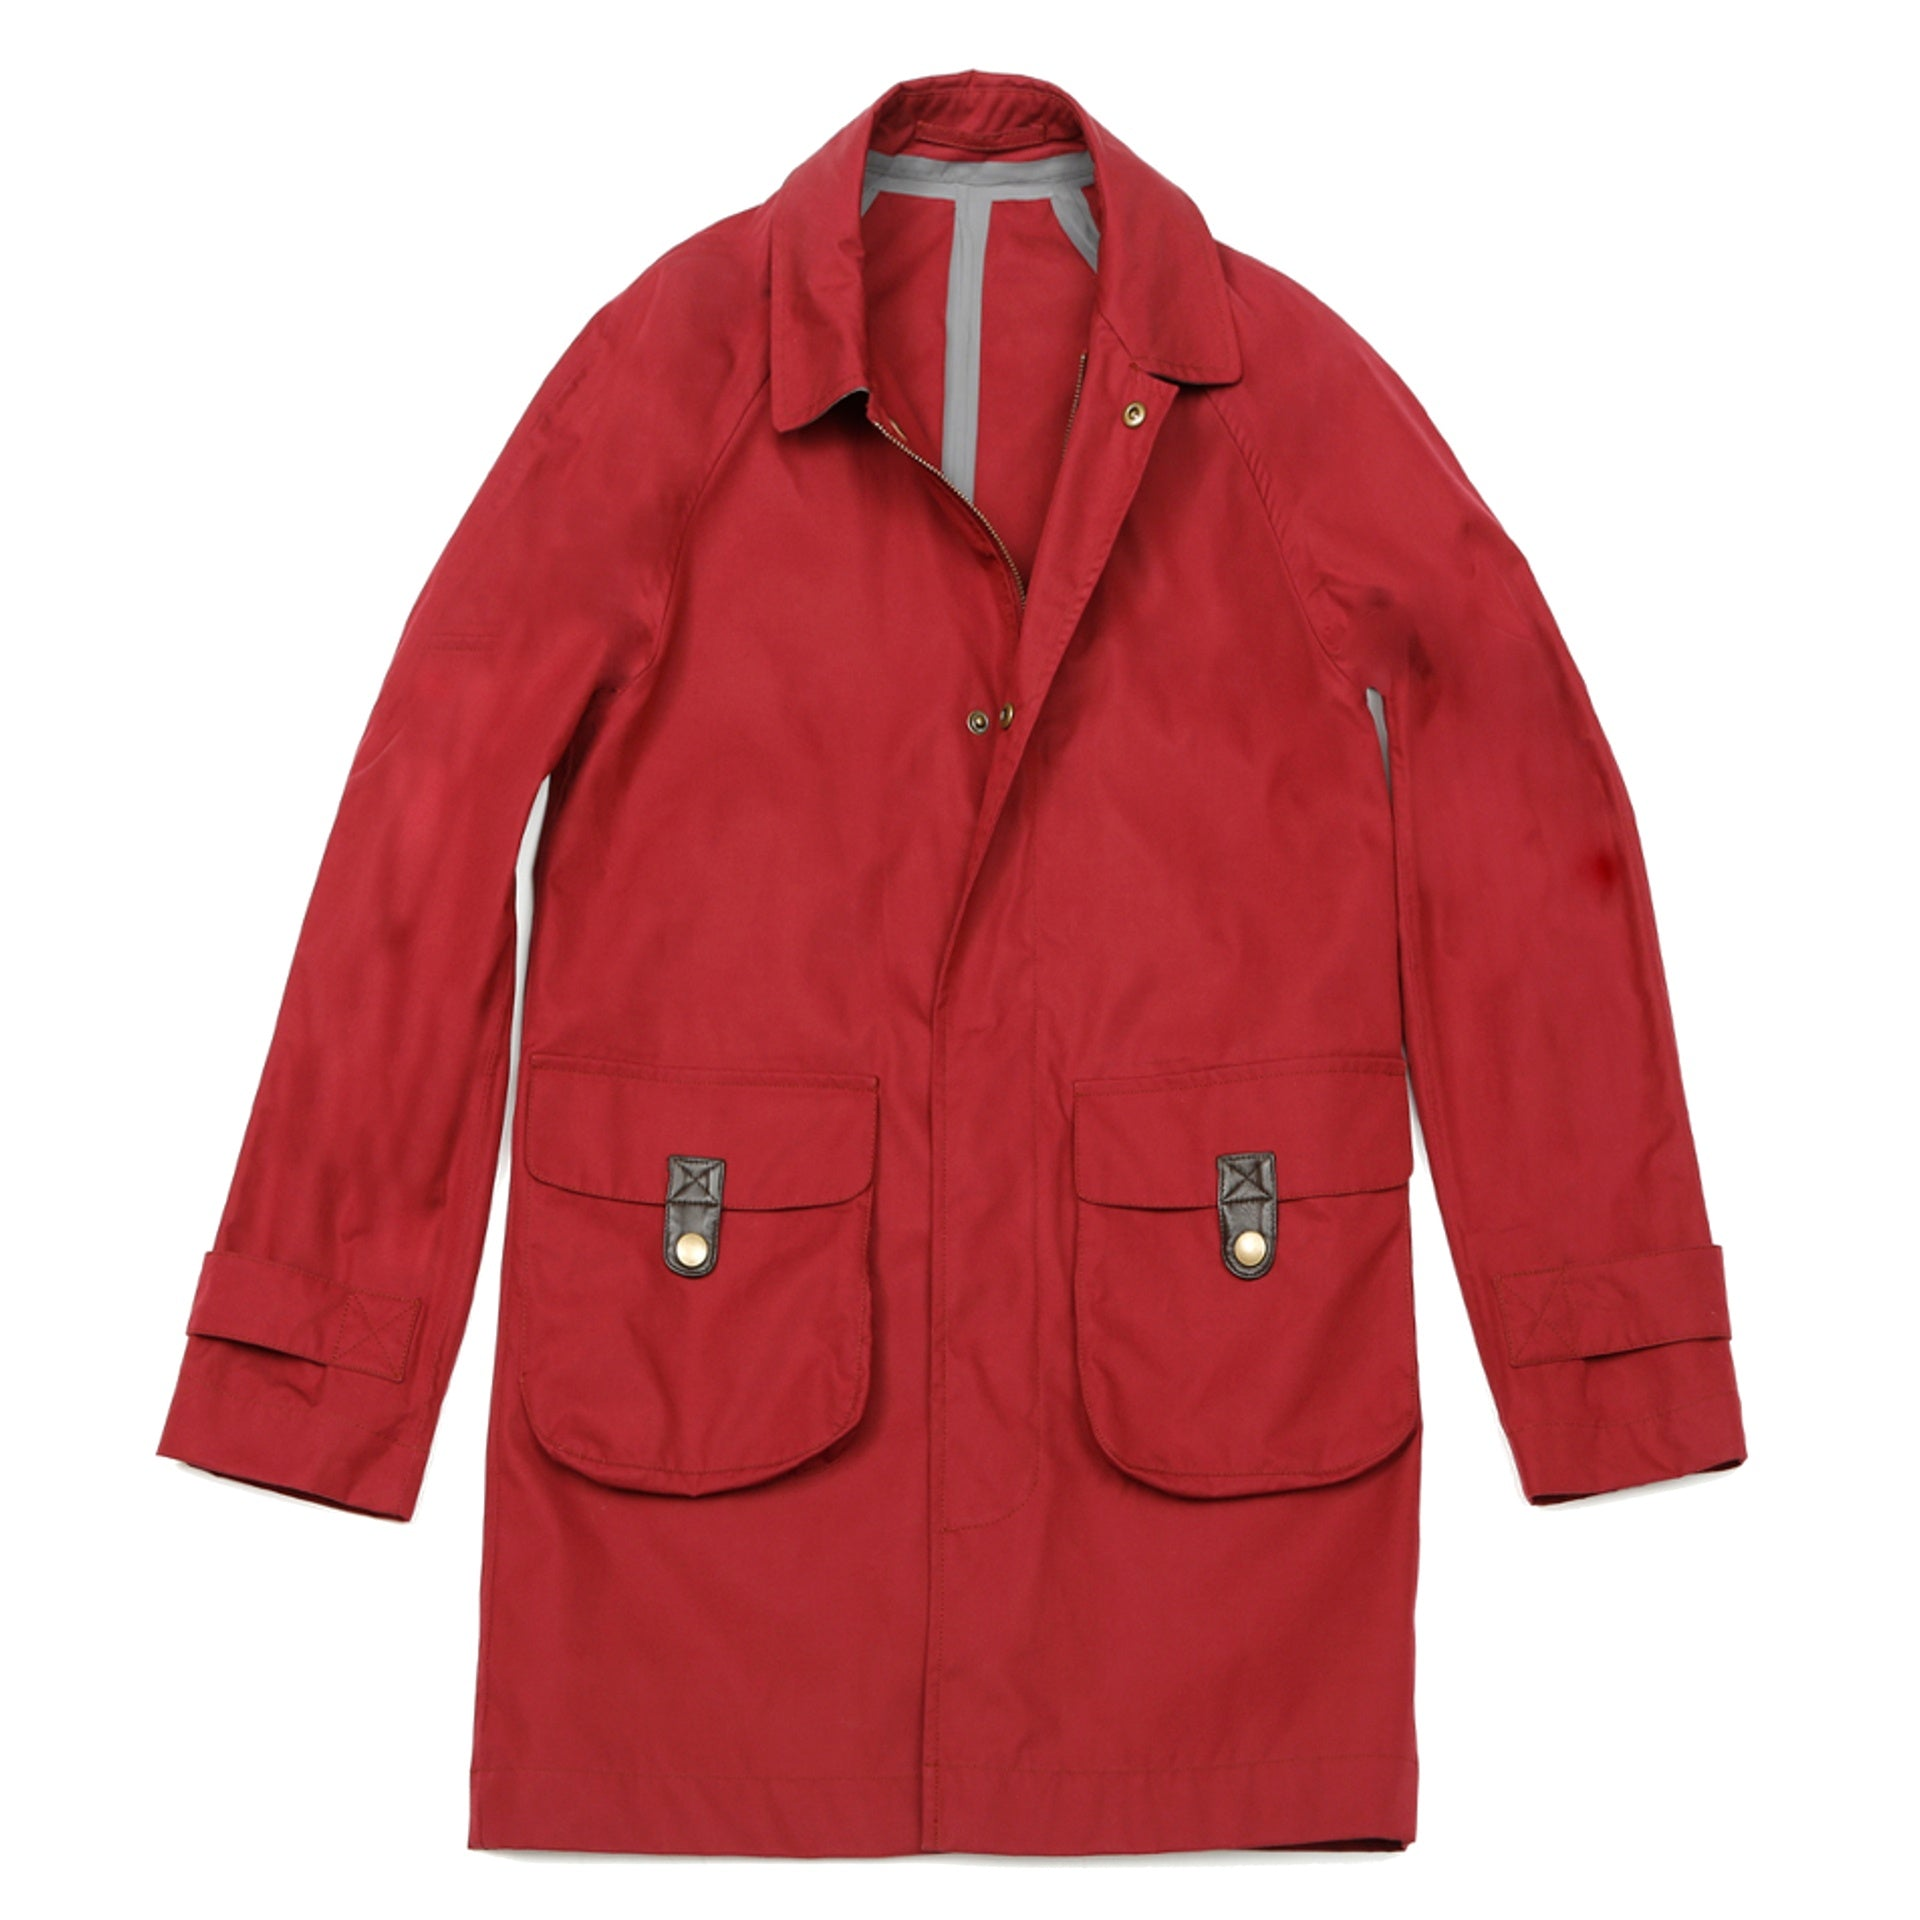 Impermeable City ventile bordeaux